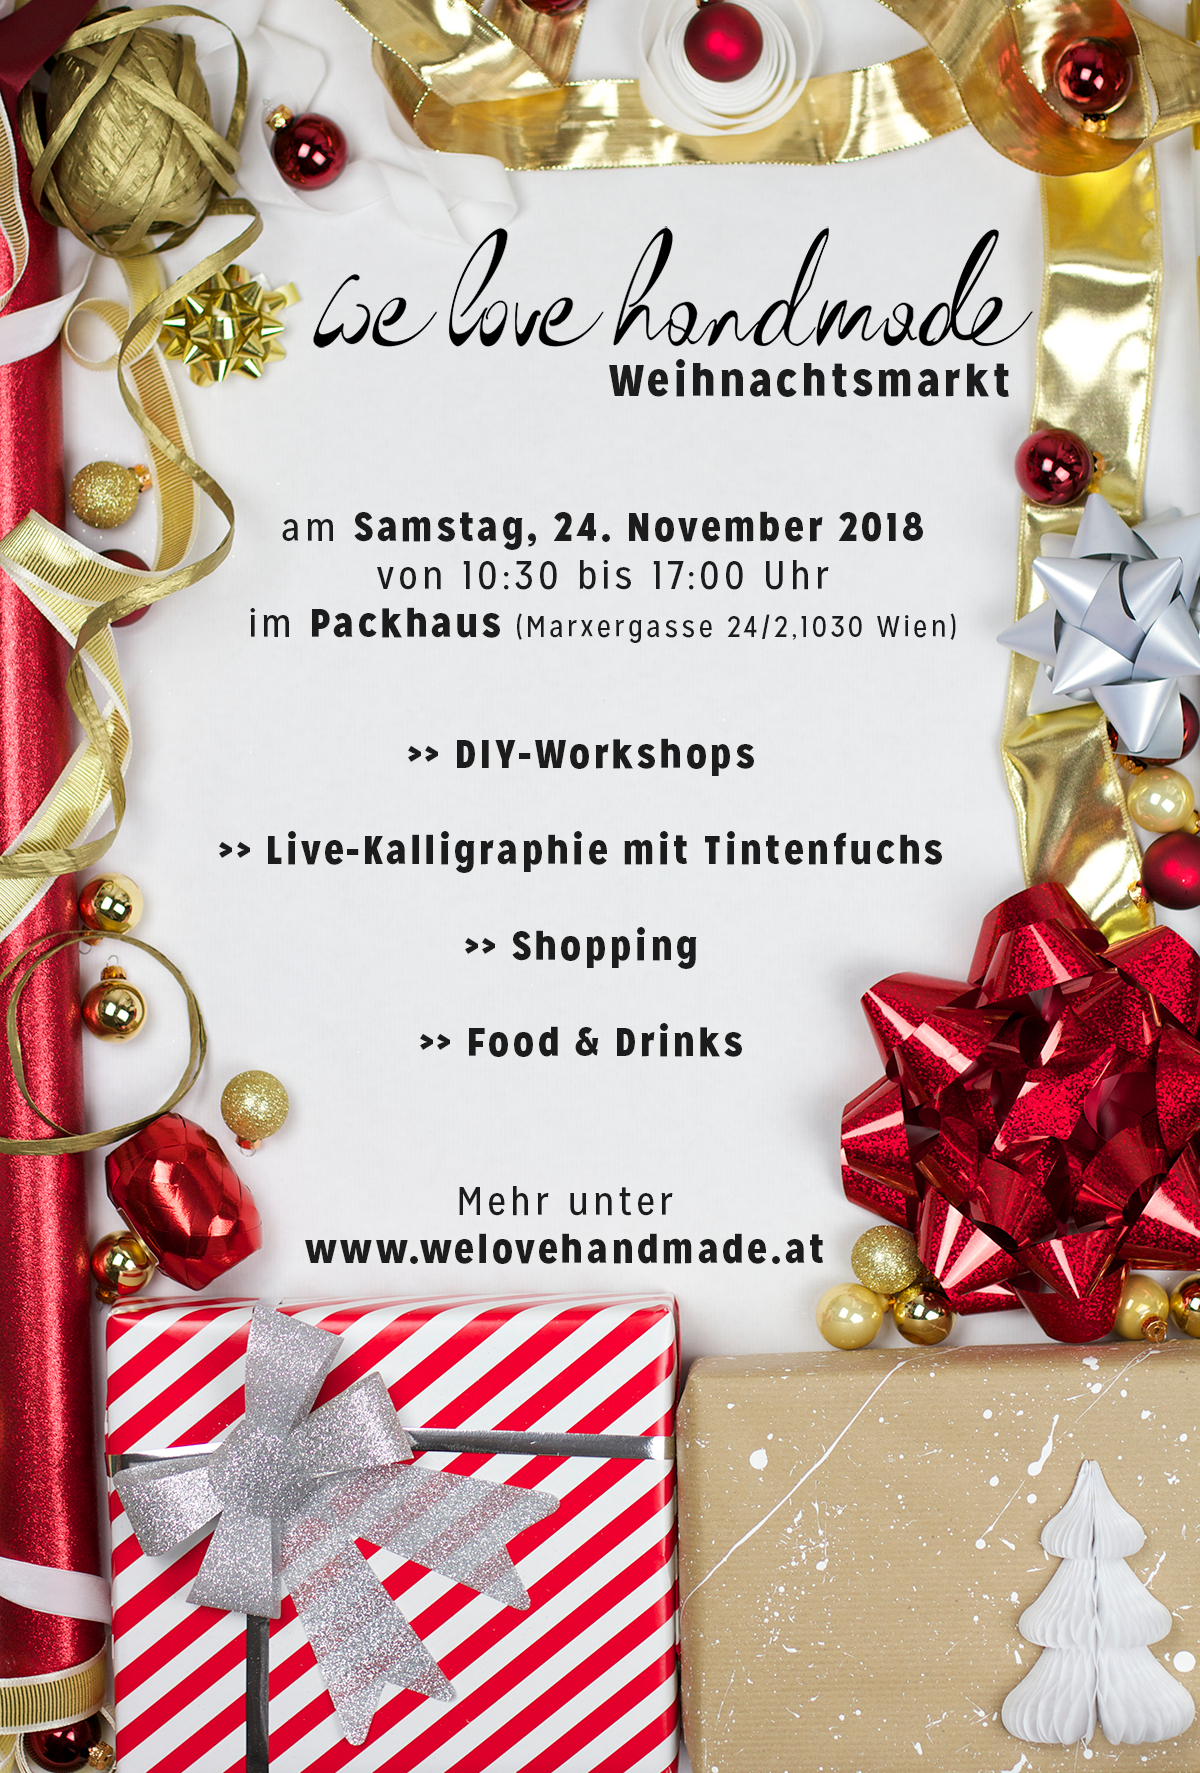 Weihnachtsmarkt: WLH-Flyer | we love handmade